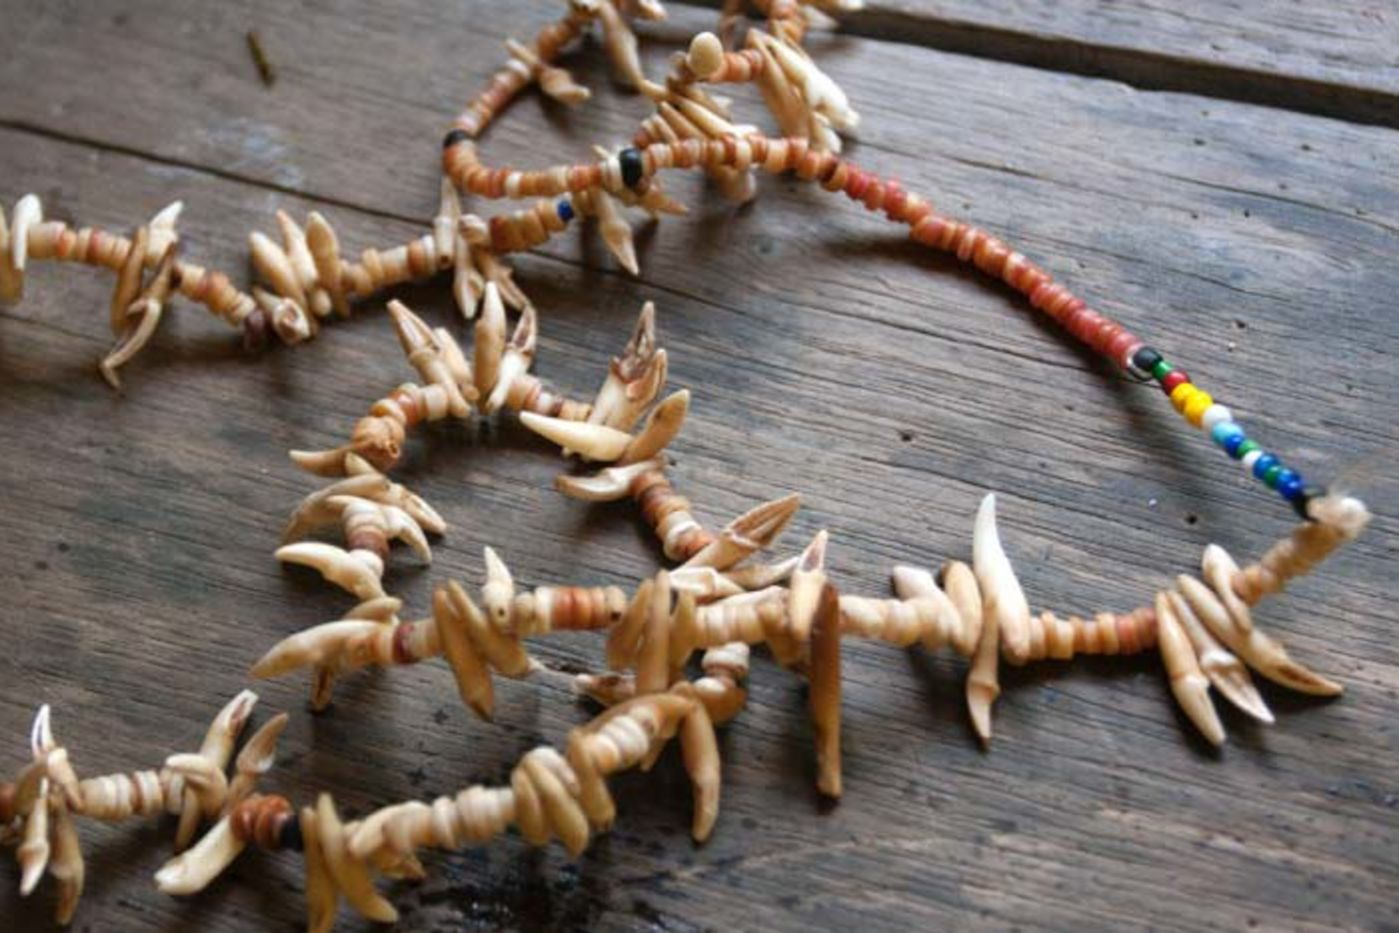 A necklace made of beads and pointy teeth, resting on a wooden surface